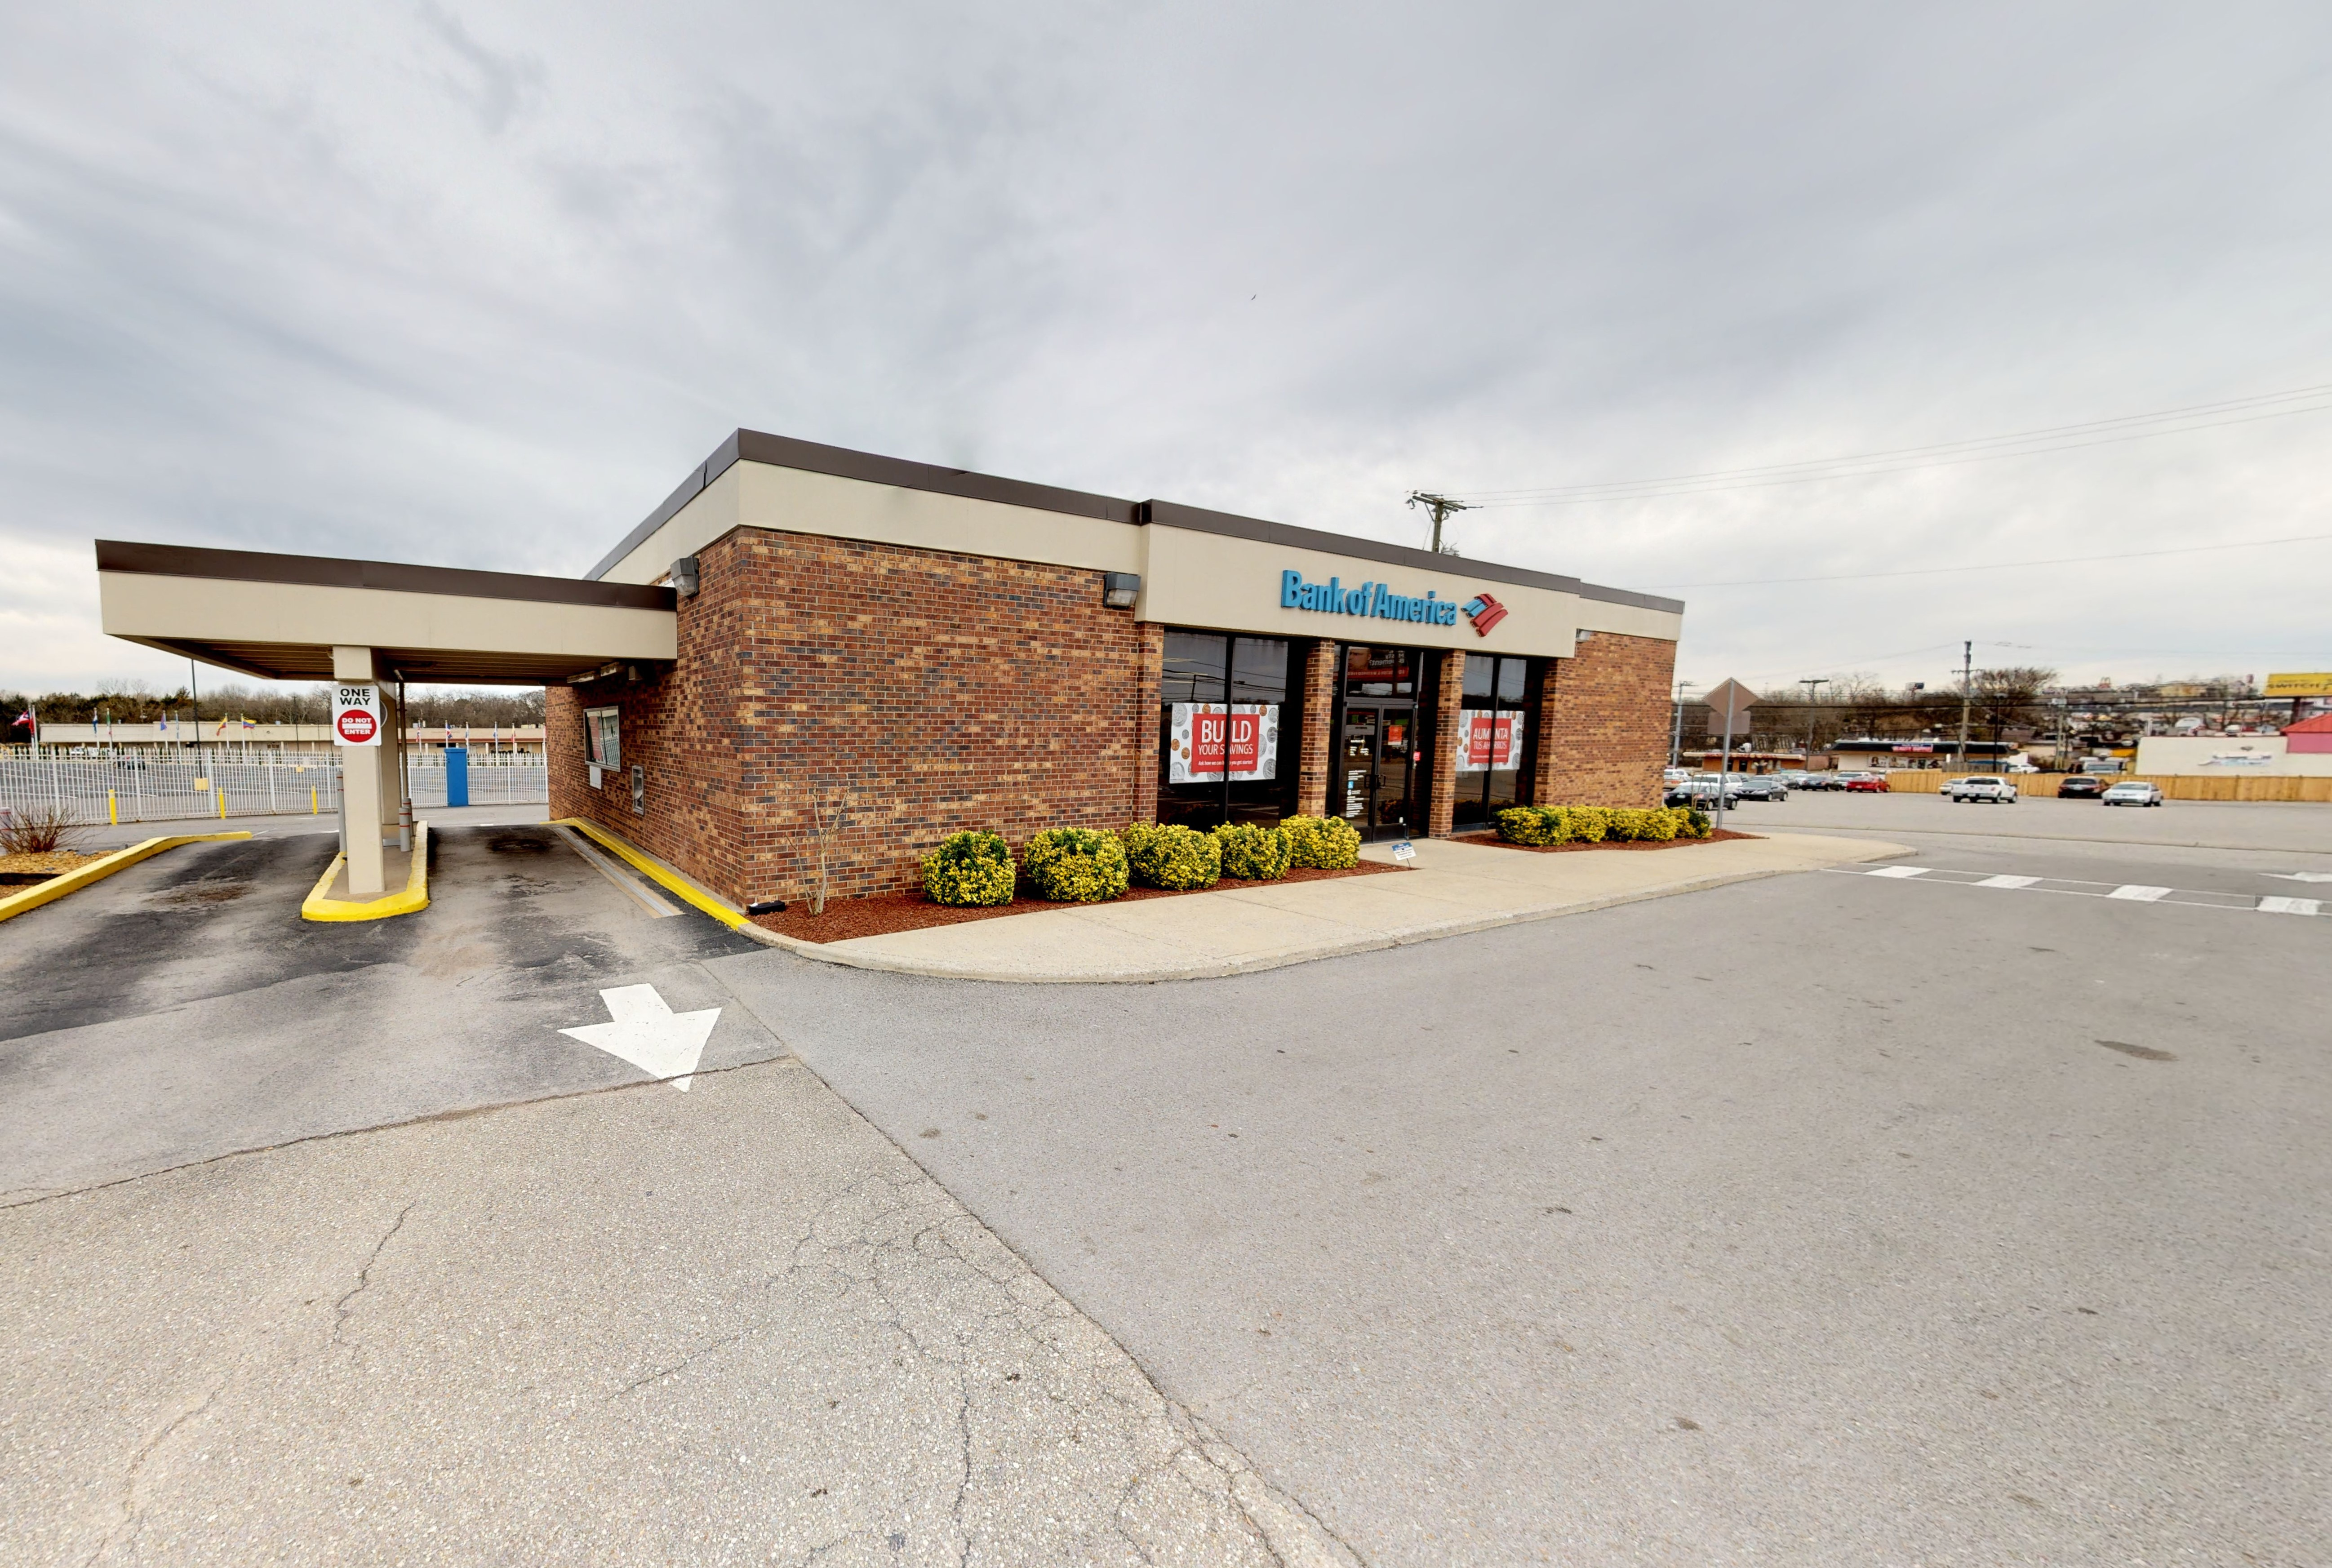 Bank of America financial center with drive-thru ATM | 3034 Dickerson Pike, Nashville, TN 37207